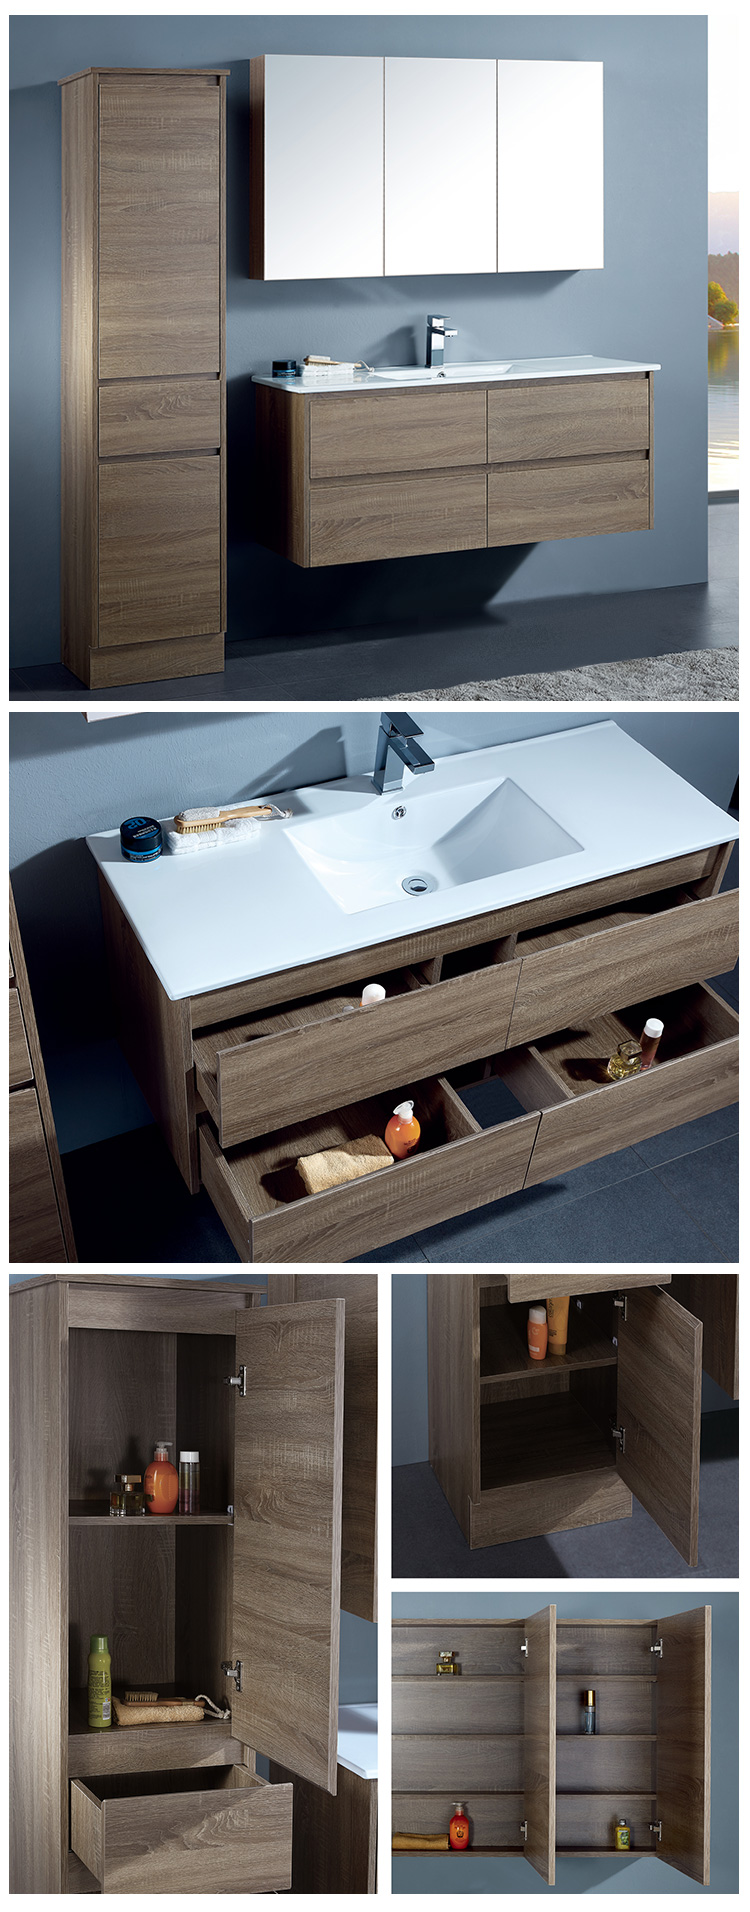 Italian Style Classic Hotel Bathroom Wood Vanity Cabinets Bath Vanity Set Bathroom Furniture